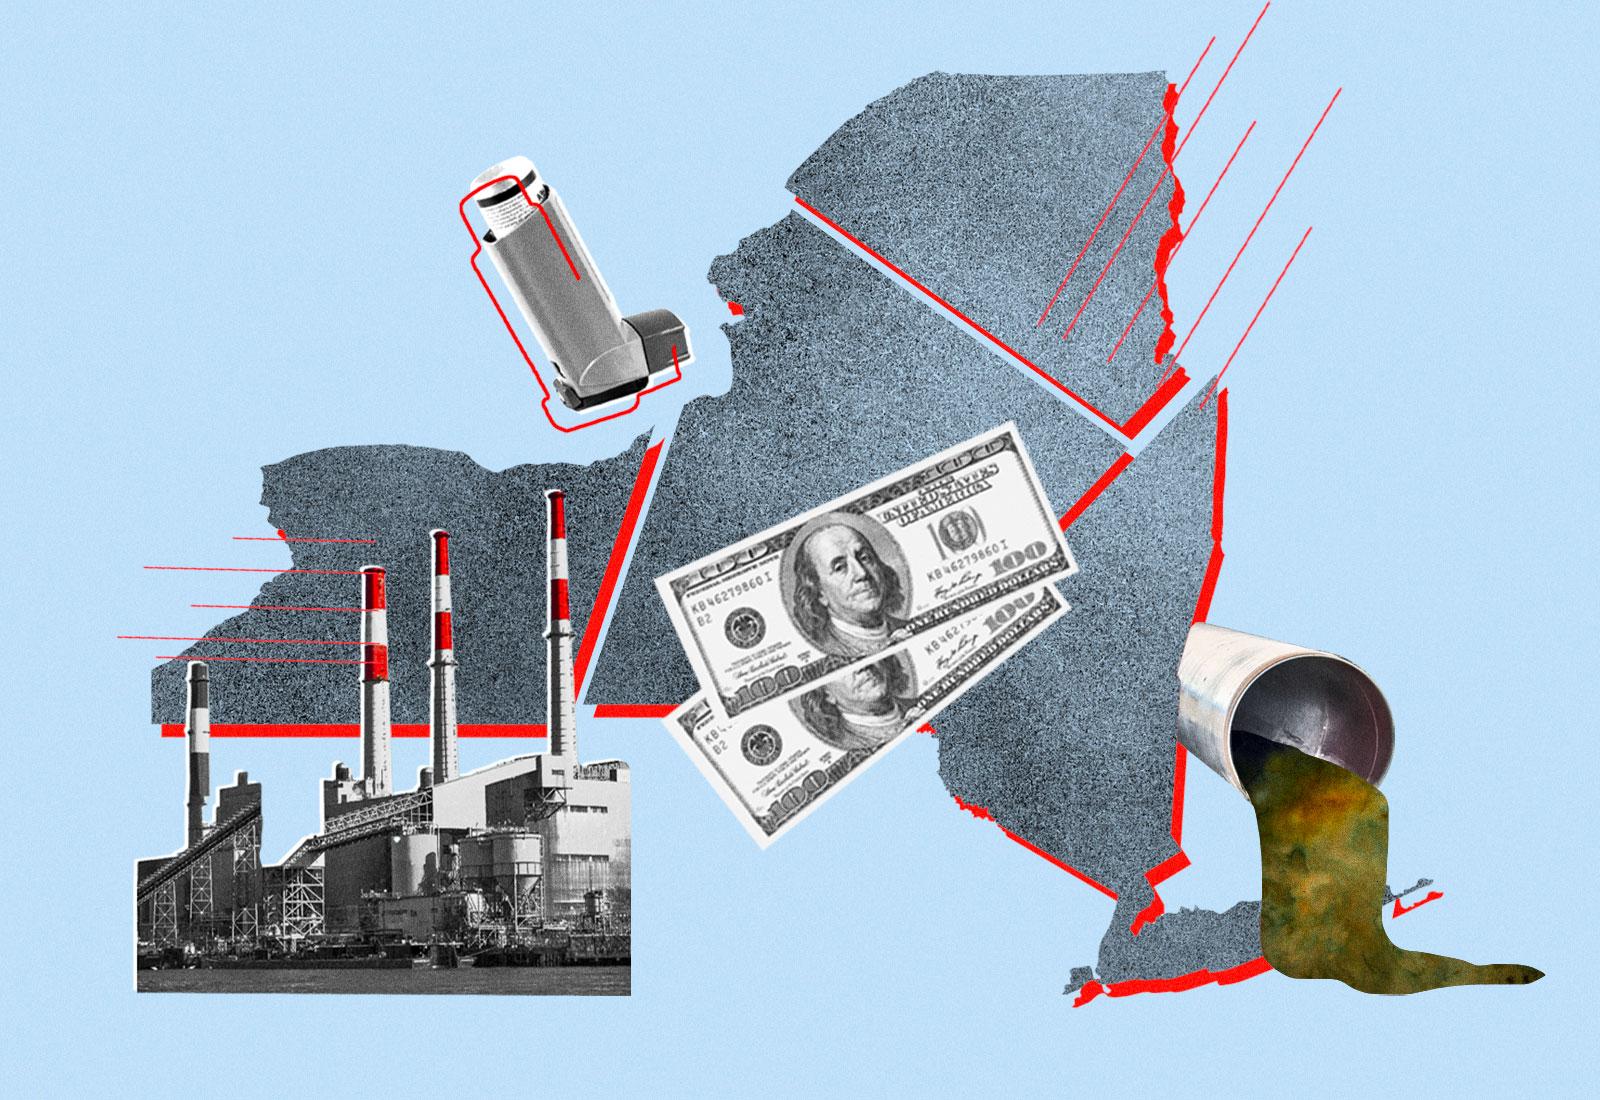 Collage: New York state split into sections, an asthma inhaler, smokestacks, money, and a sewage pipe